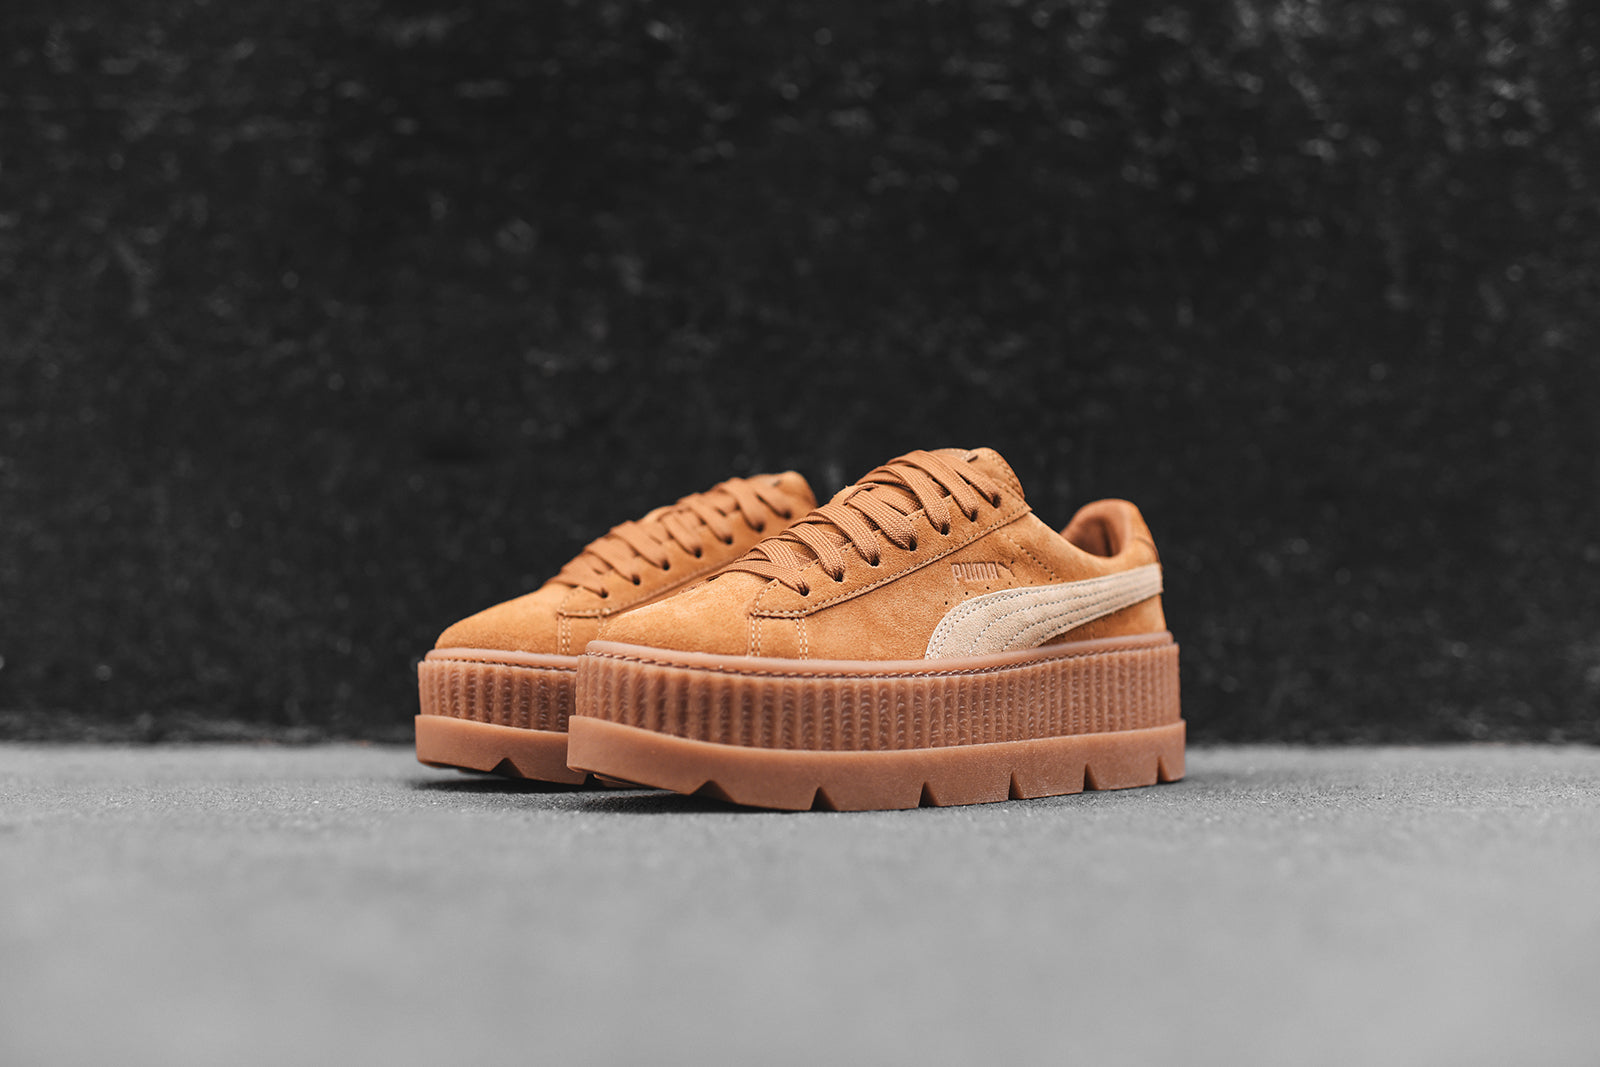 premium selection c089c 9c39c Puma x Fenty WMNS Cleated Creeper Suede Pack – Kith